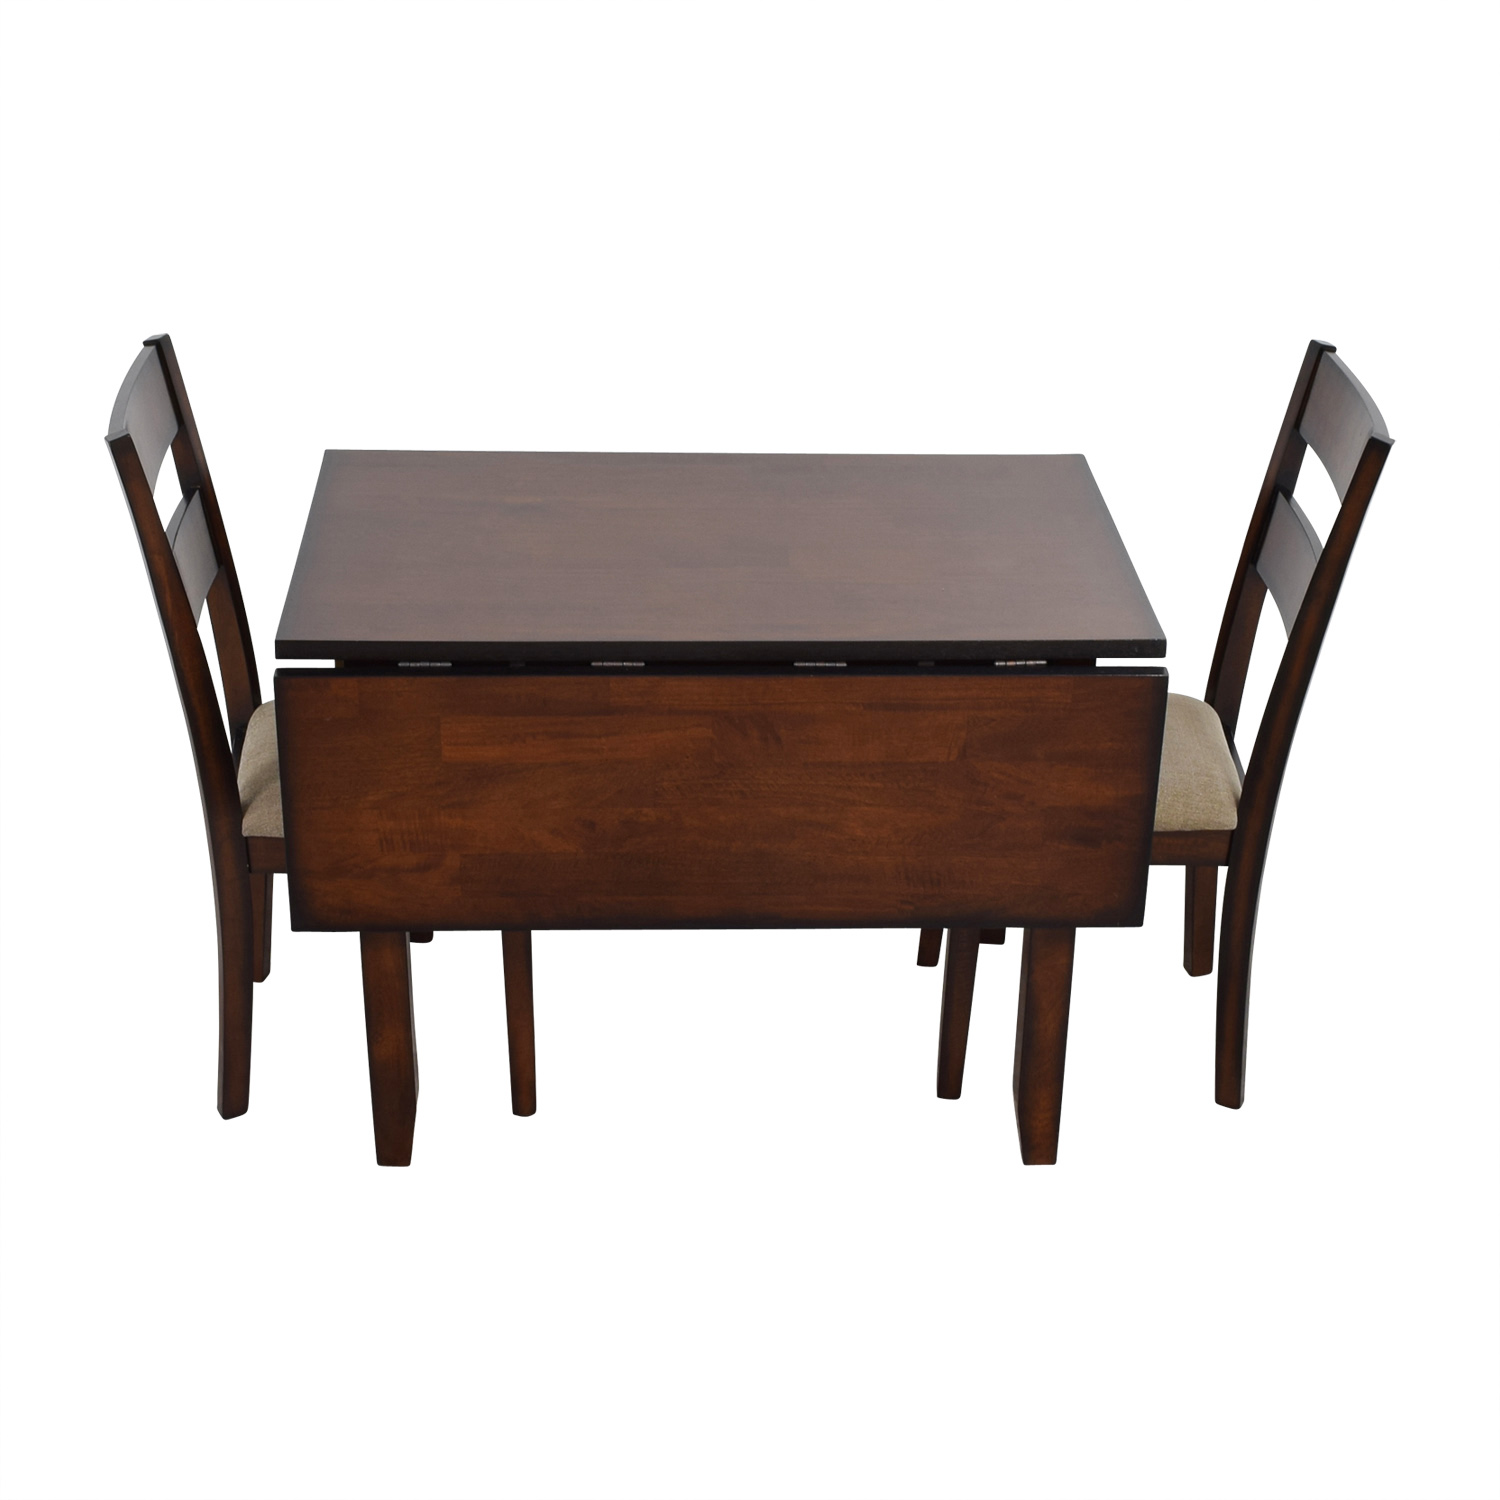 Drop Leaf Table With Chairs 65 Off Ifm Ifm Drop Leaf Table With Two Chairs Tables